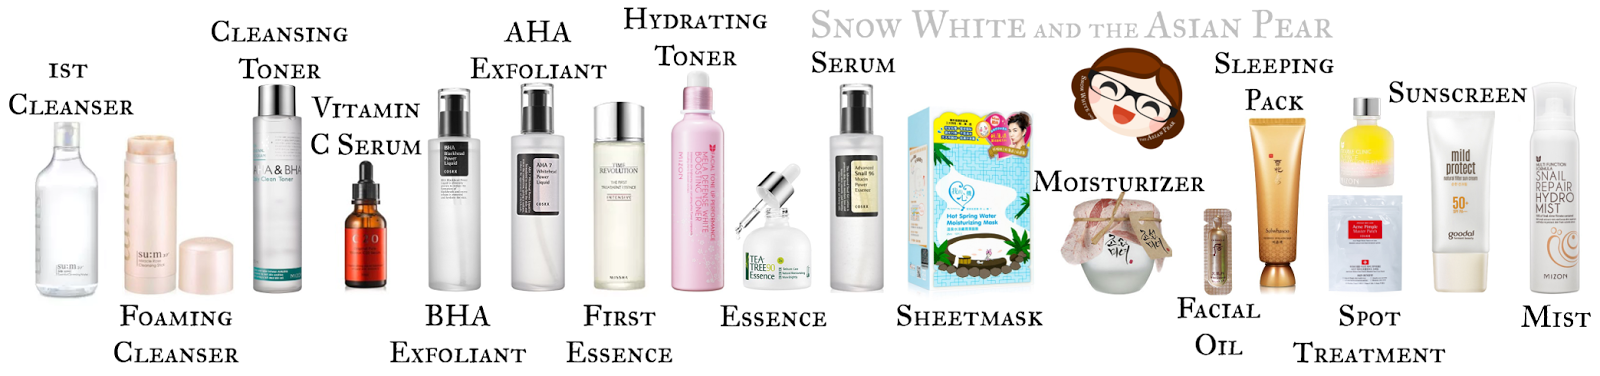 Skincare product routine in order